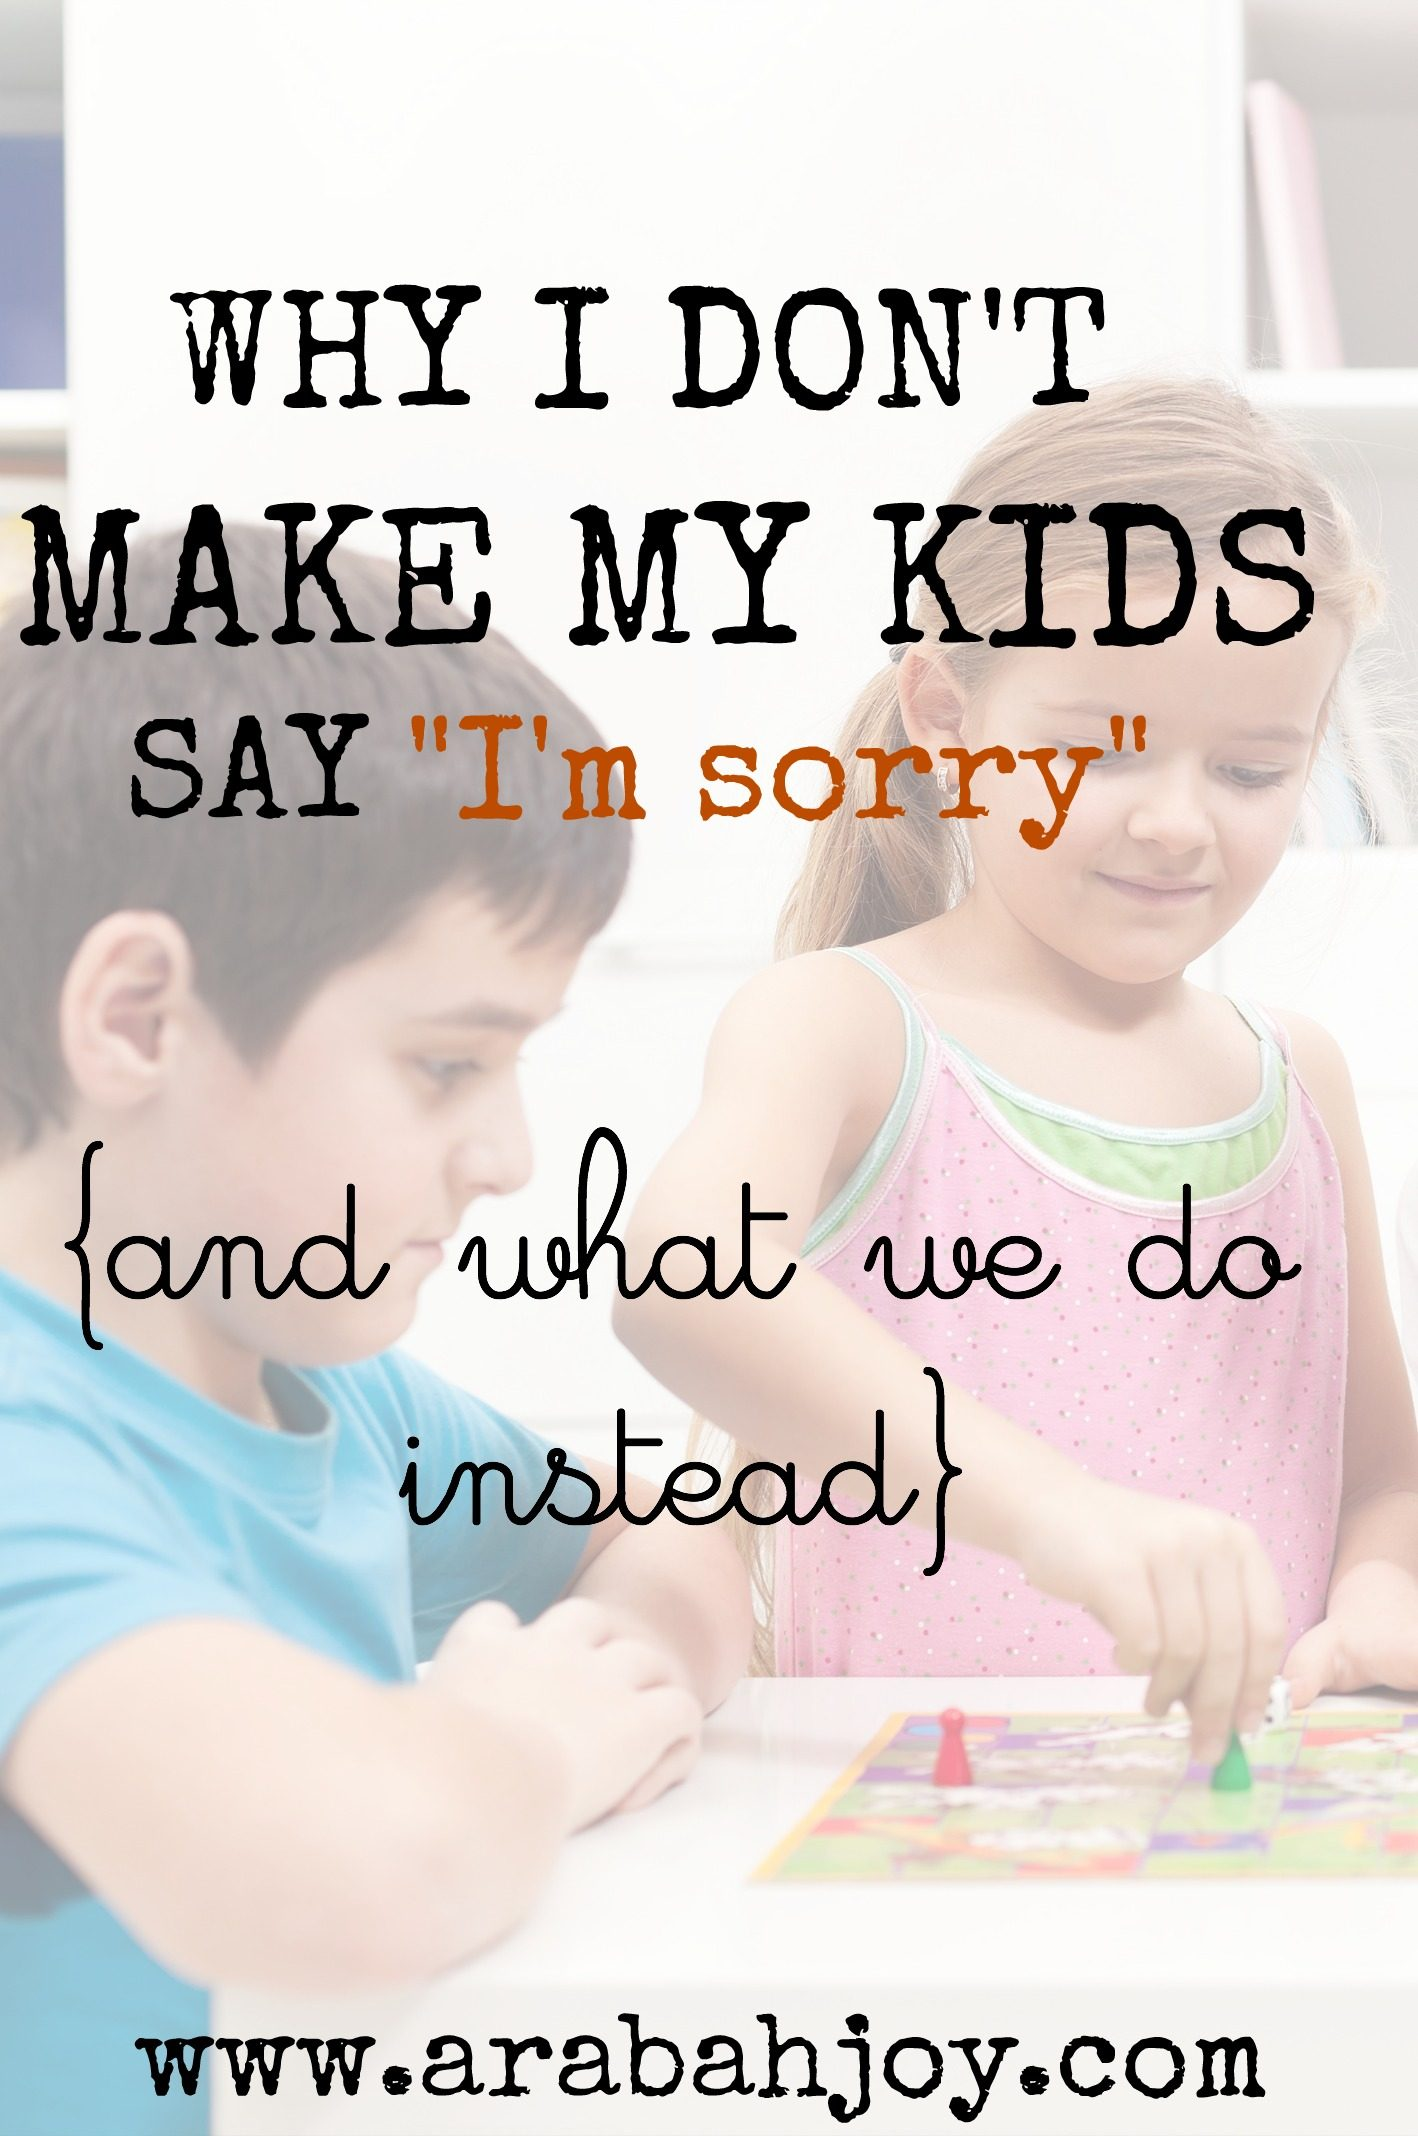 Why I Don't Make My Kids Say